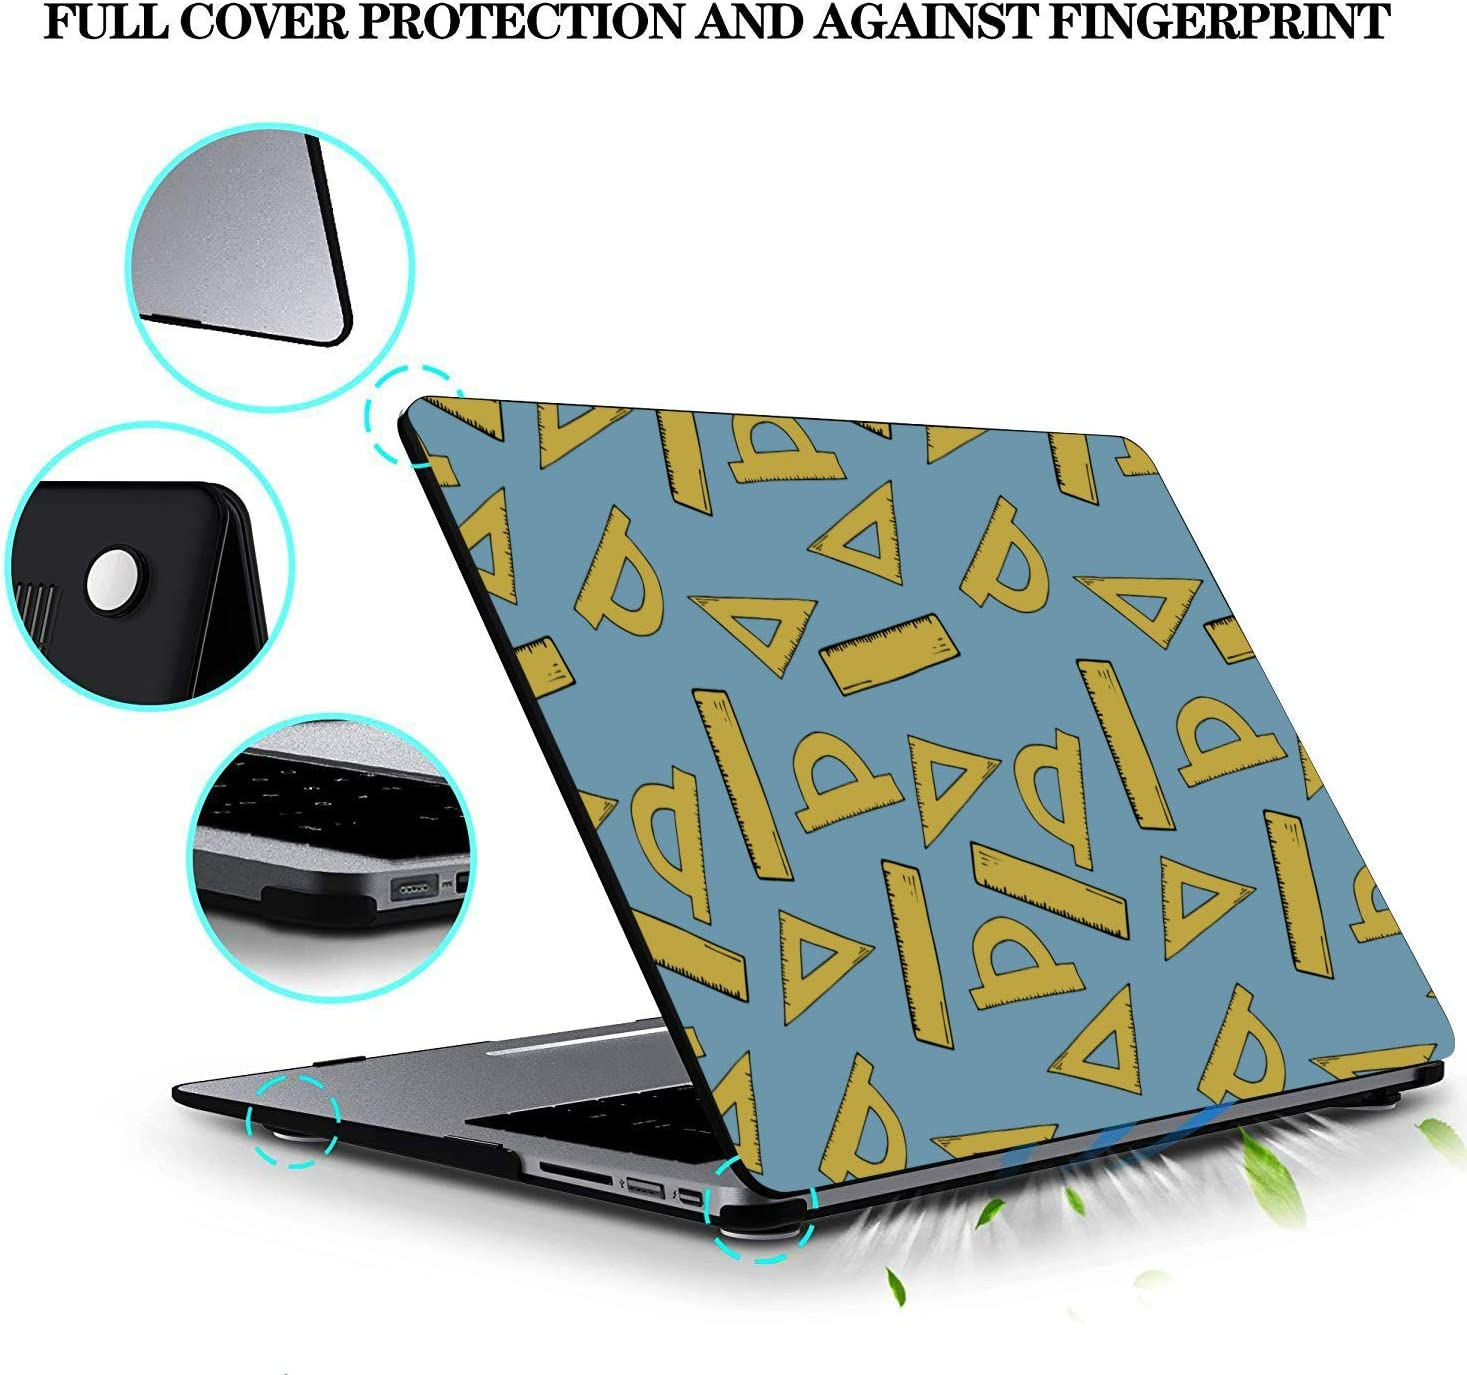 Mackbook Case School Supplies Cute Stationery Bag Plastic Hard Shell Compatible Mac Air 11 Pro 13 15 MacBook Assessories Protection for MacBook 2016-2019 Version